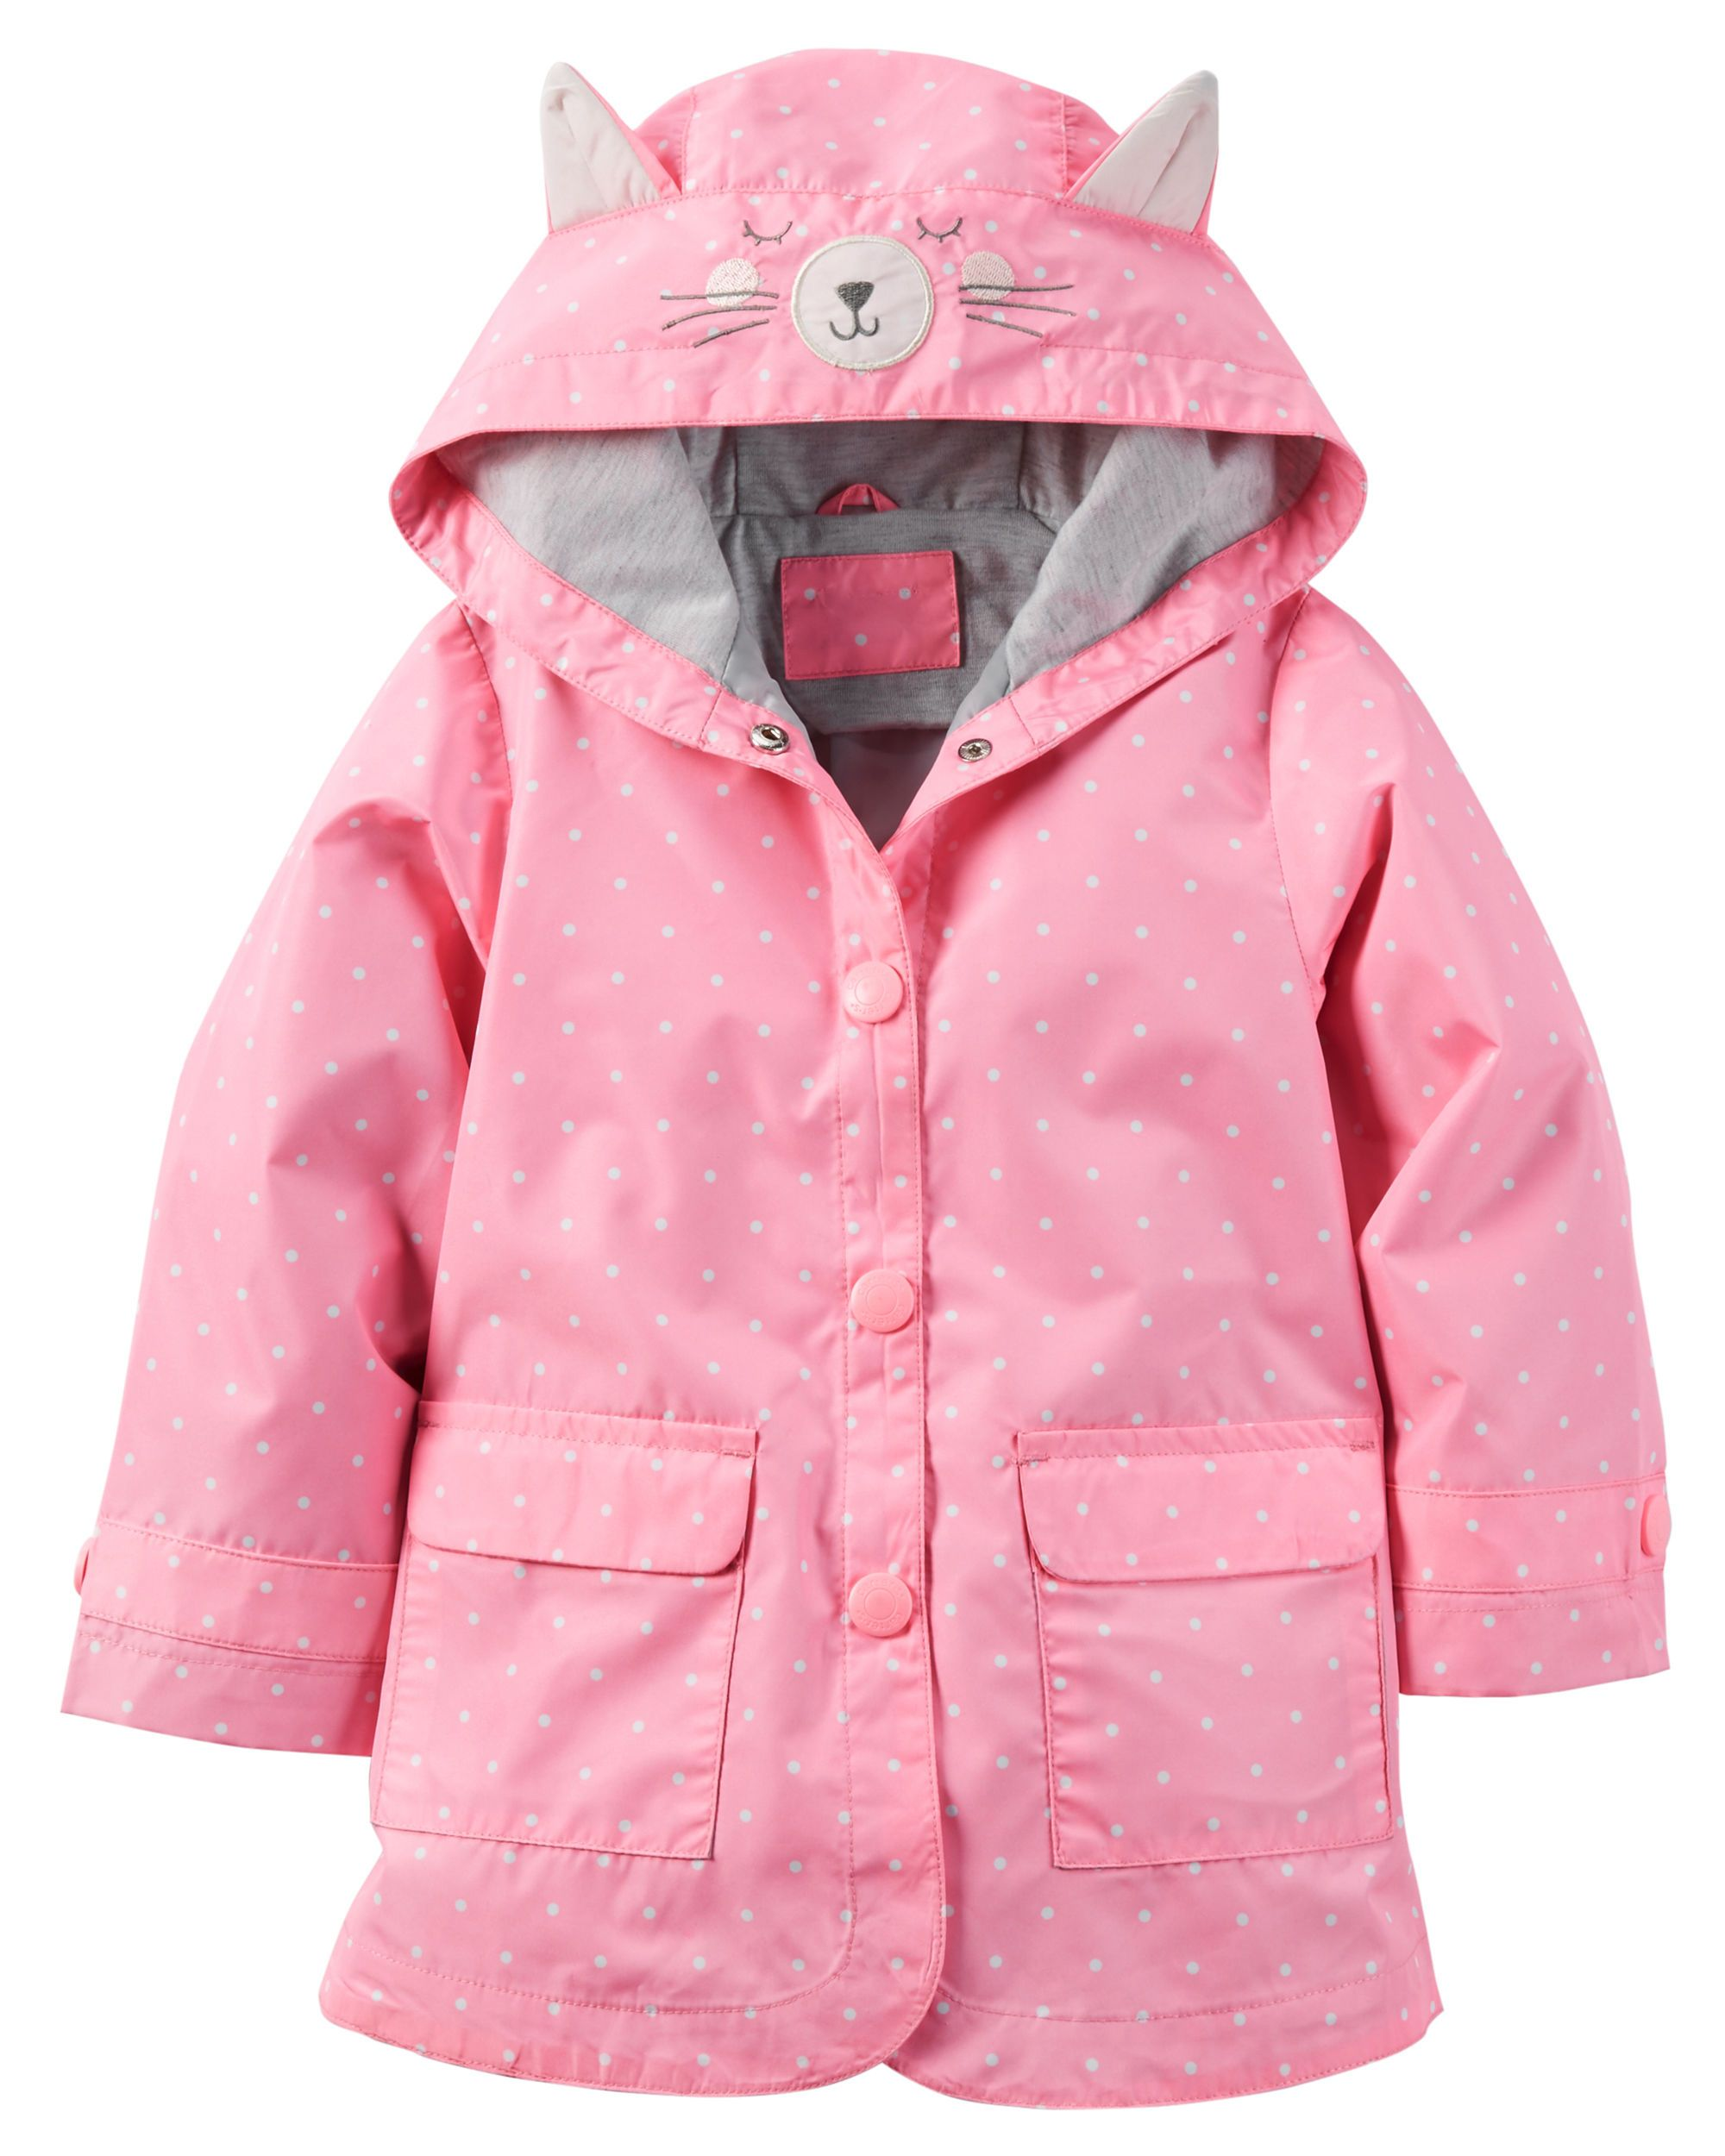 3f012b74a Kitty Raincoat | Baby girl | Baby girl jackets, Toddler raincoat ...